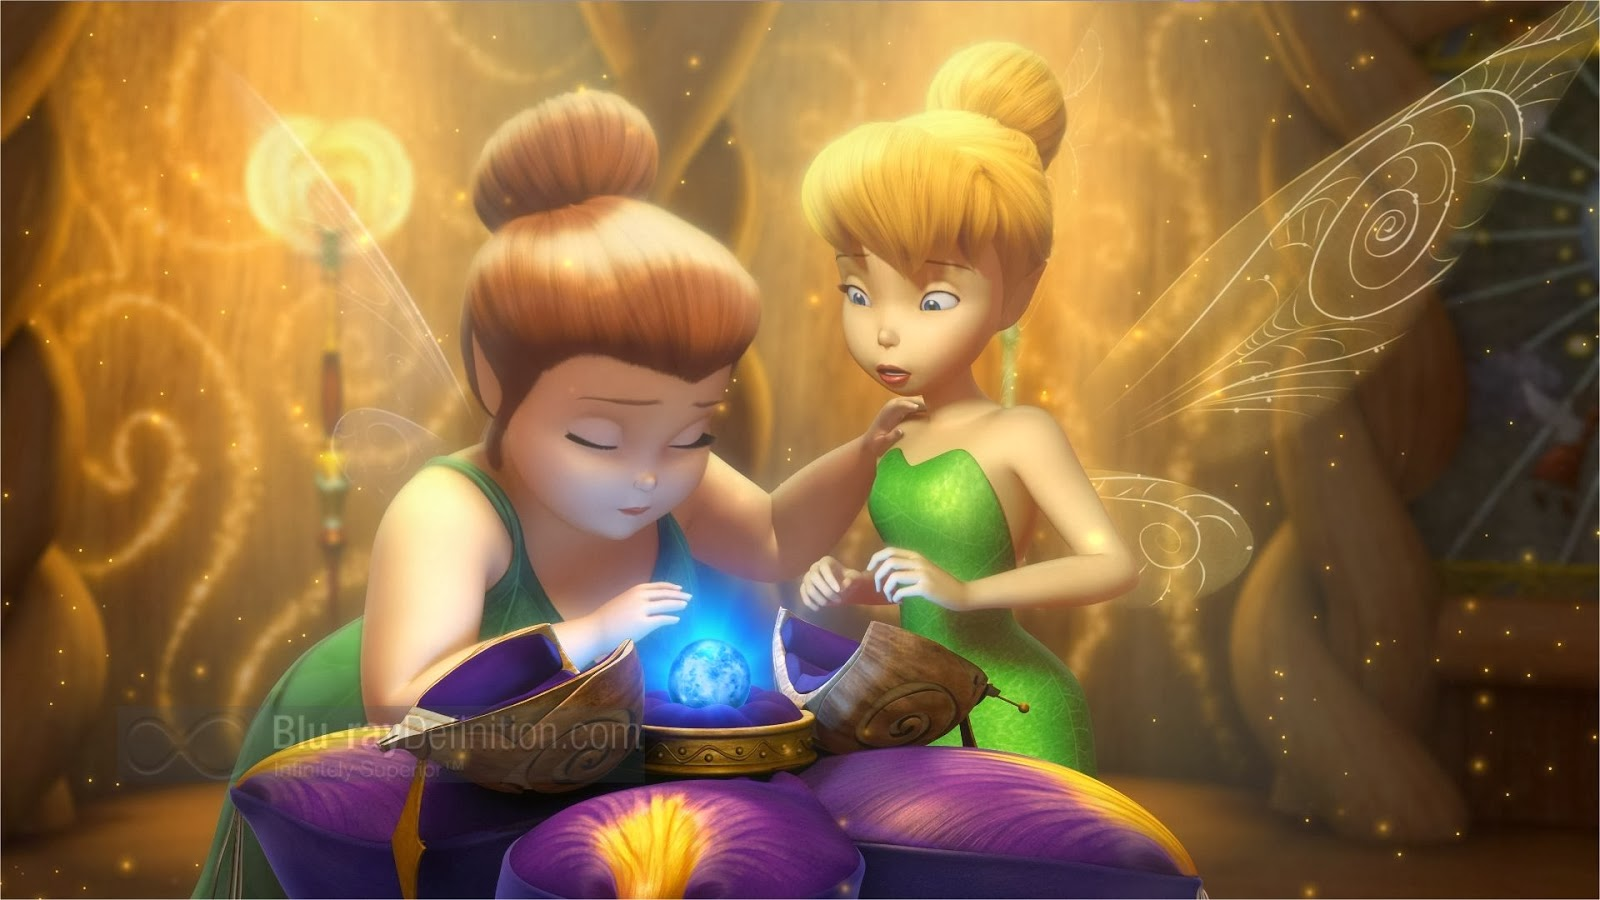 Tinkerbell Wallpaper For Iphone 6 Wallpaper Tinkerbell Hd 1080p Your Title